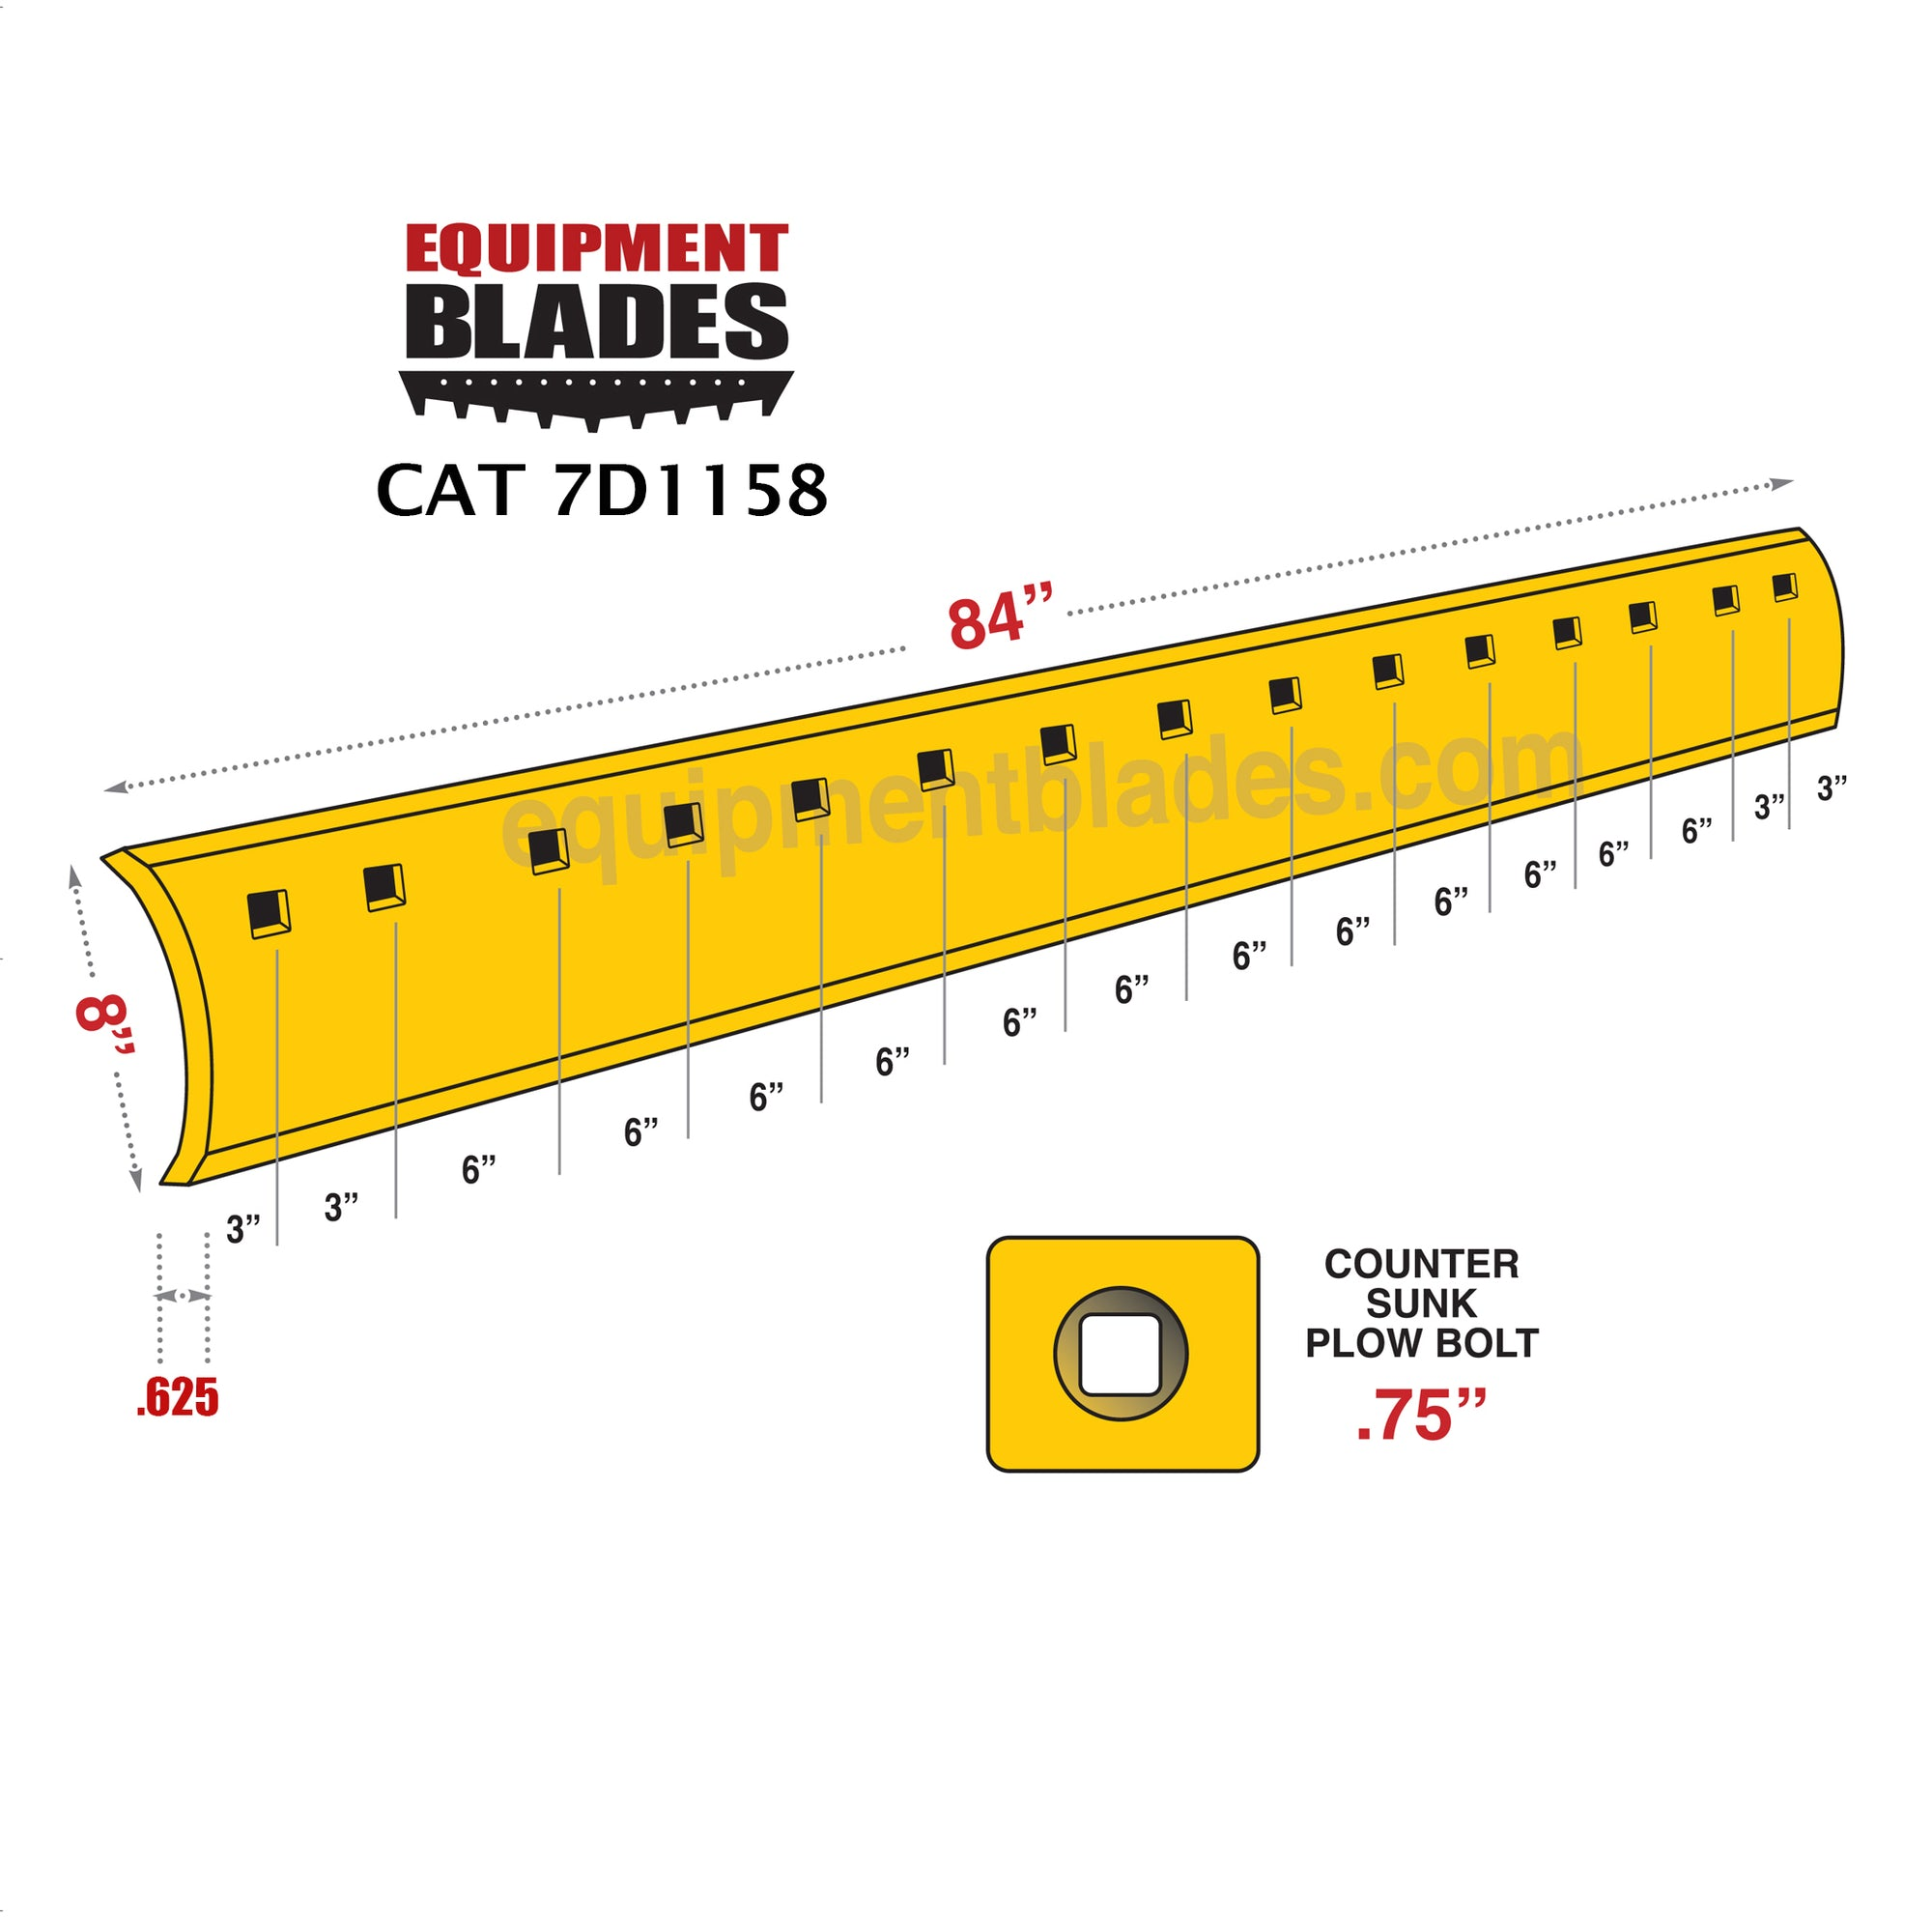 CAT 7D1158-Equipment Blades-Equipment Blades Inc